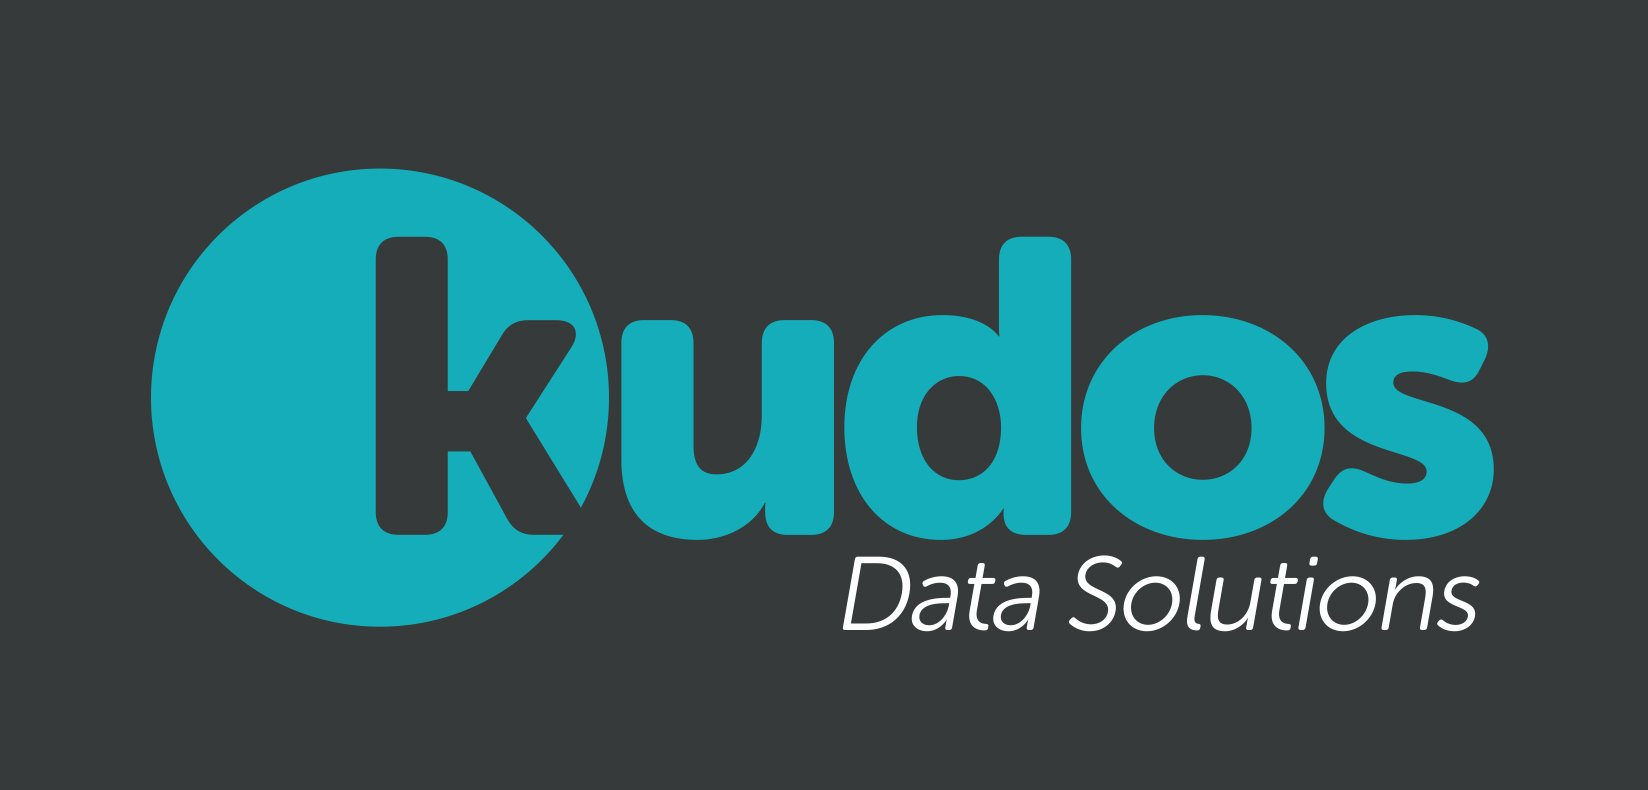 kudos data logo